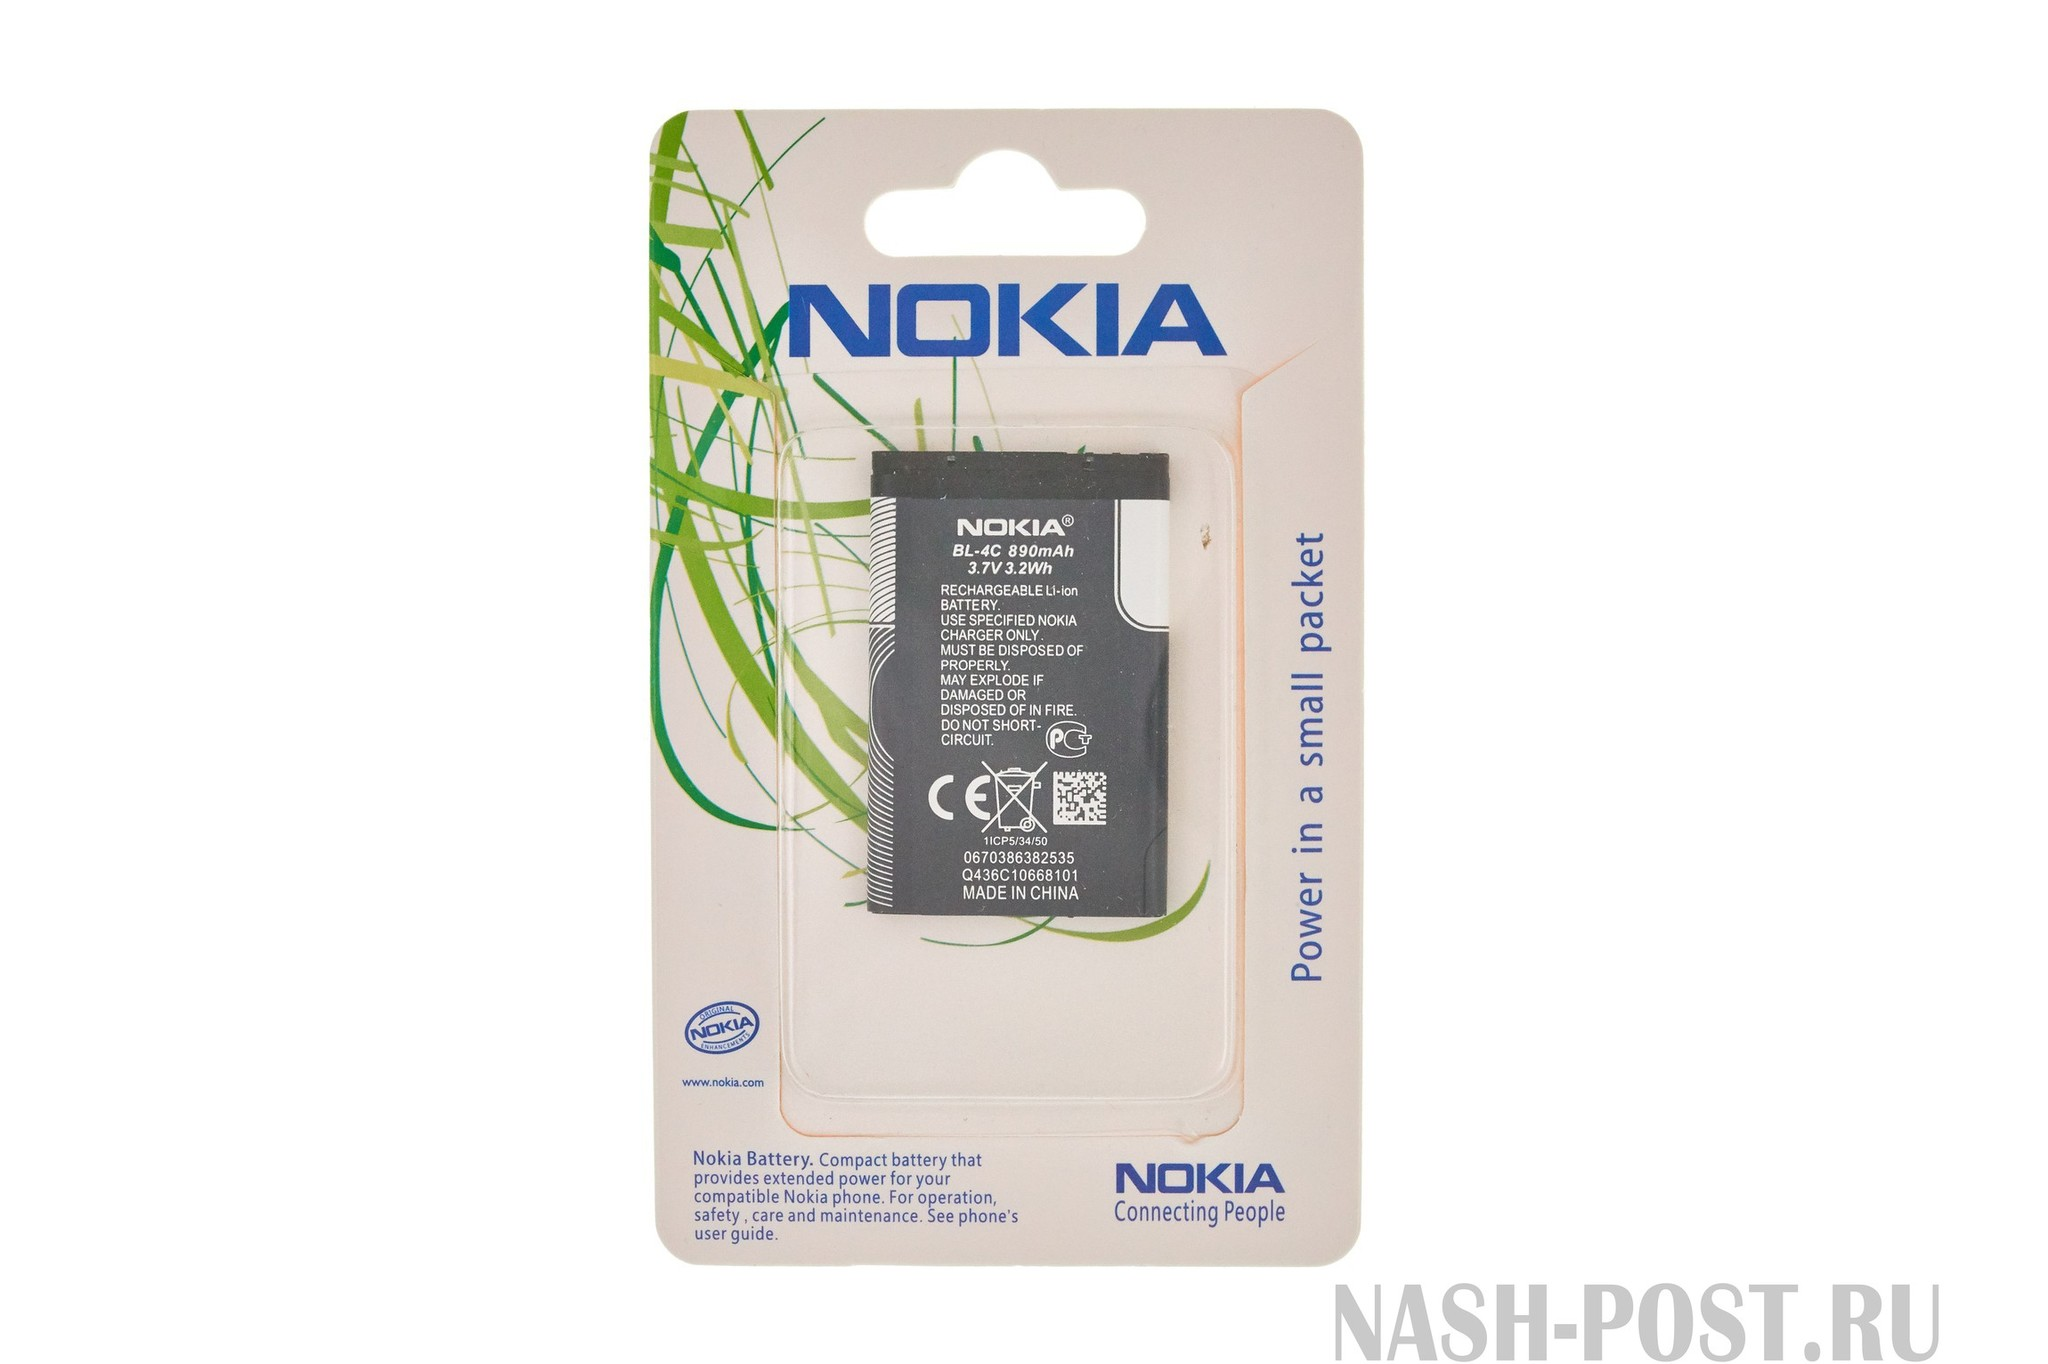 Nokia battery Nokia for BL-4C nk101.jpg